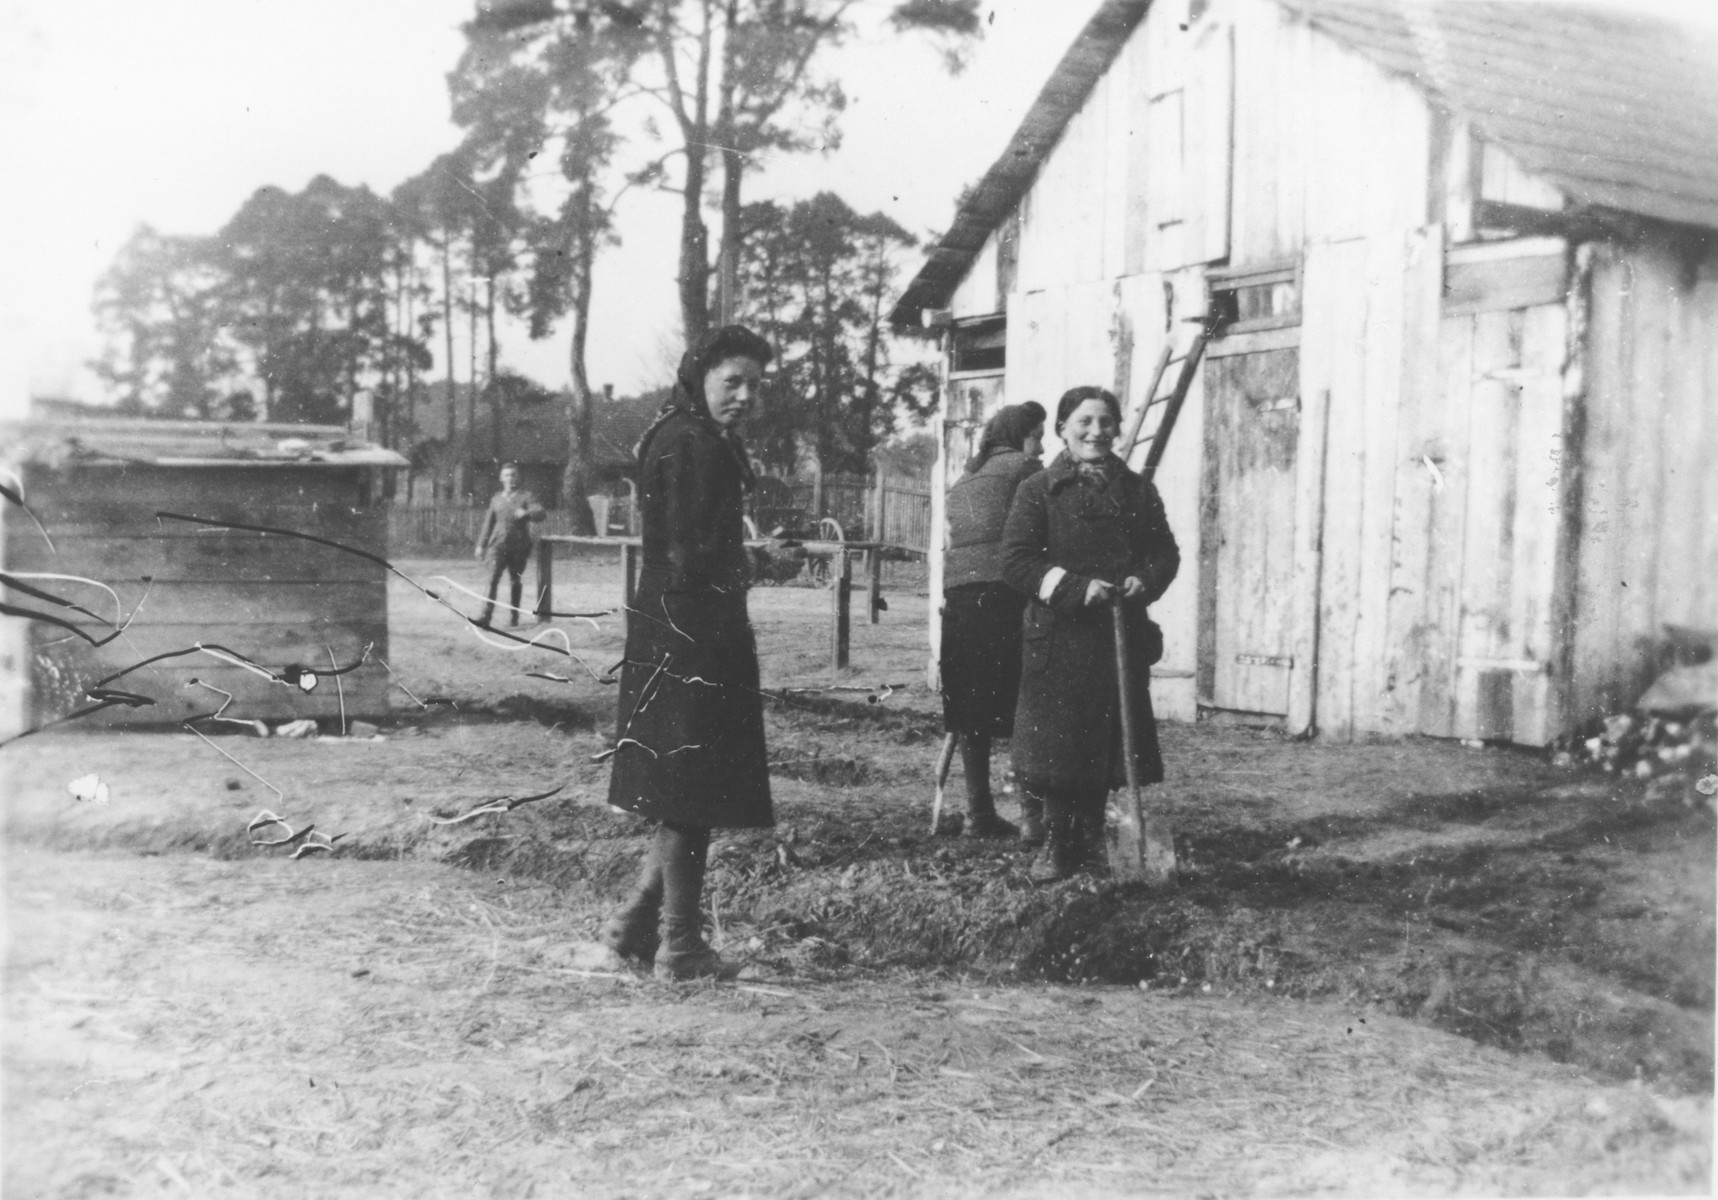 Jewish women wearing armbands dig in a garden of an unidentified ghetto while a German soldier stands in the background..